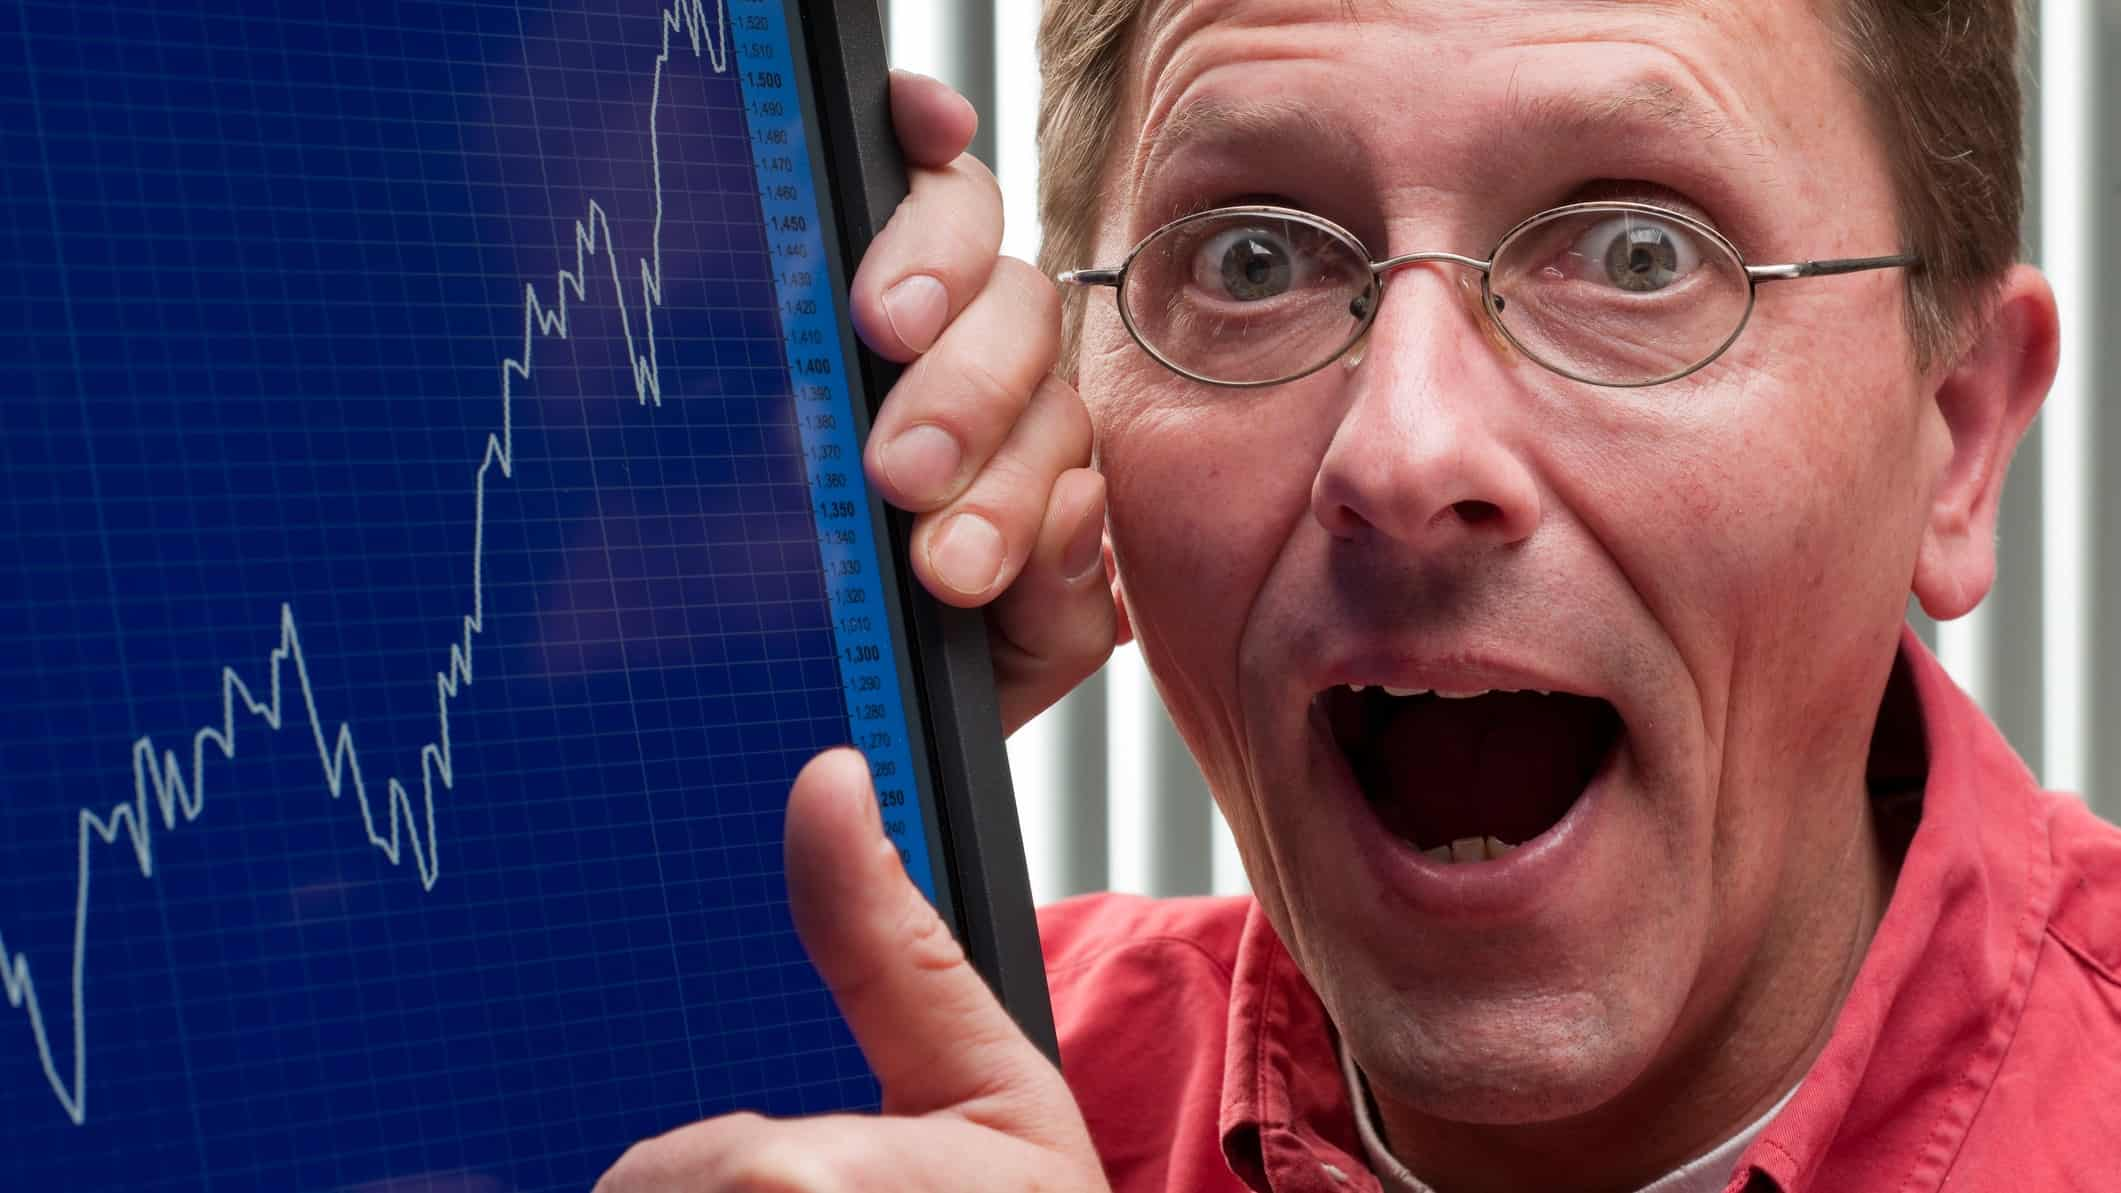 a happy investor with wide mouth expression grasps a computer screen that shows a rising line charting the upward trend of a share price